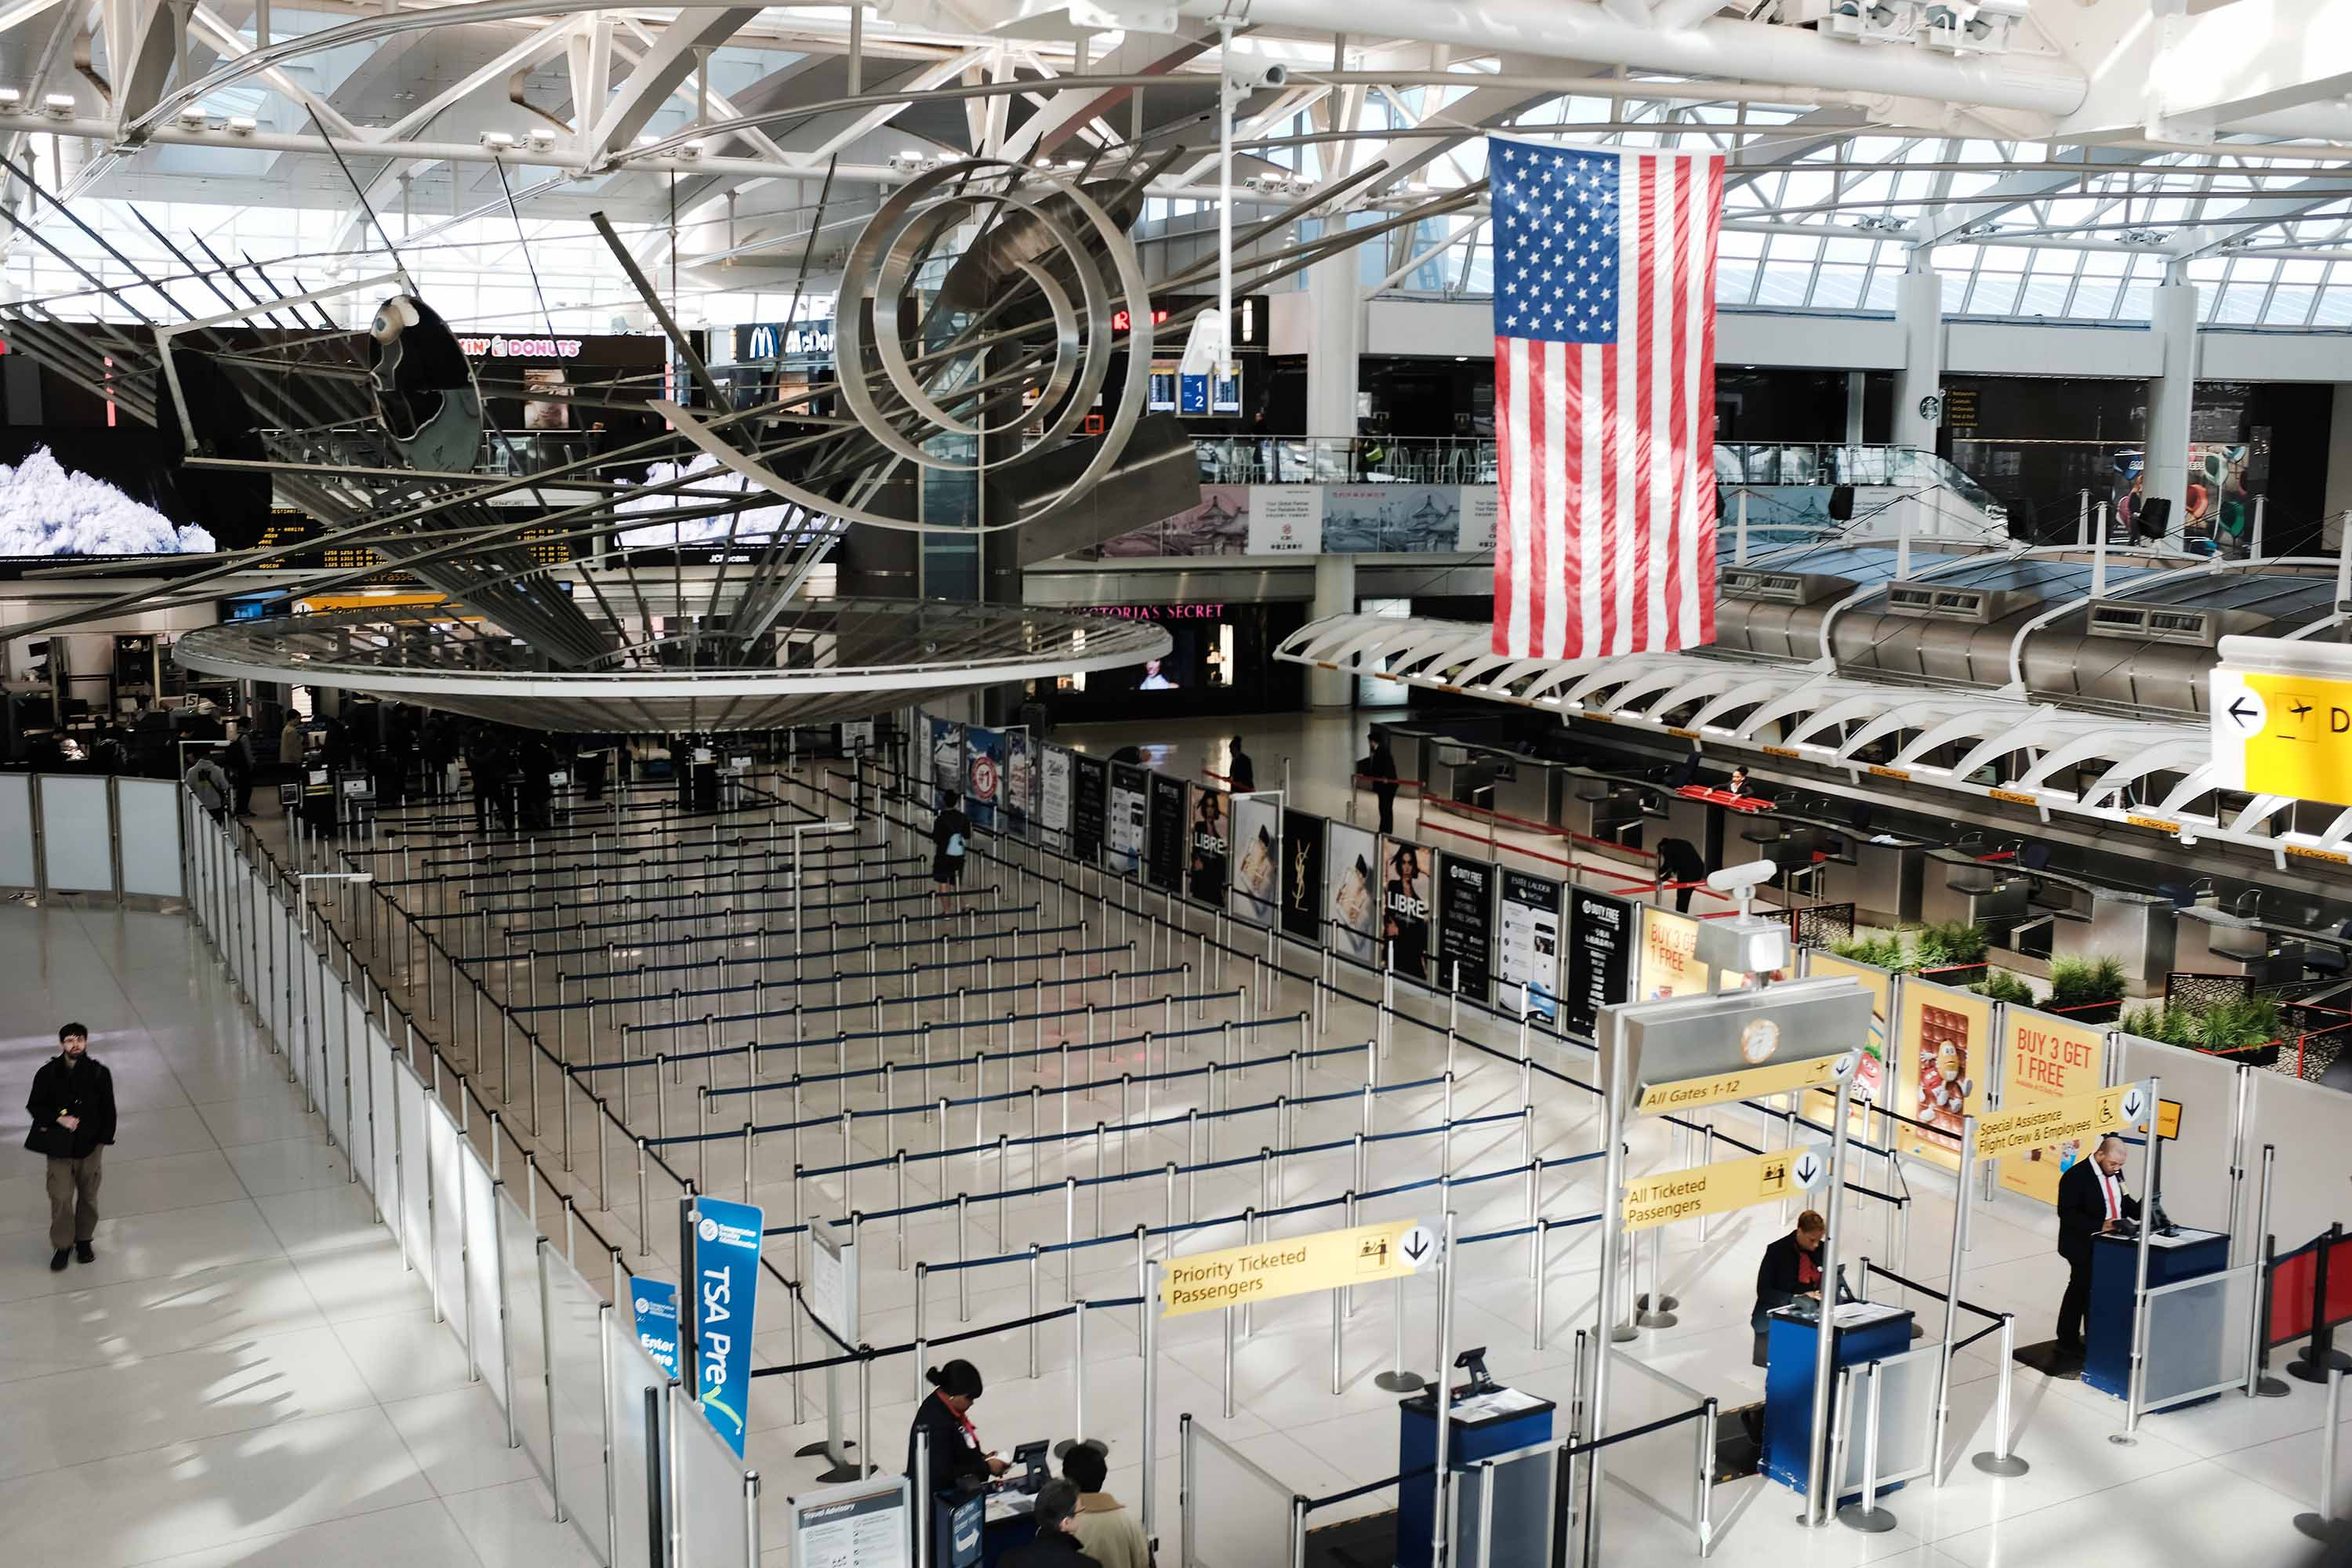 People walk through an international departure terminal at John F. Kennedy Airport in New York City, on March 7.